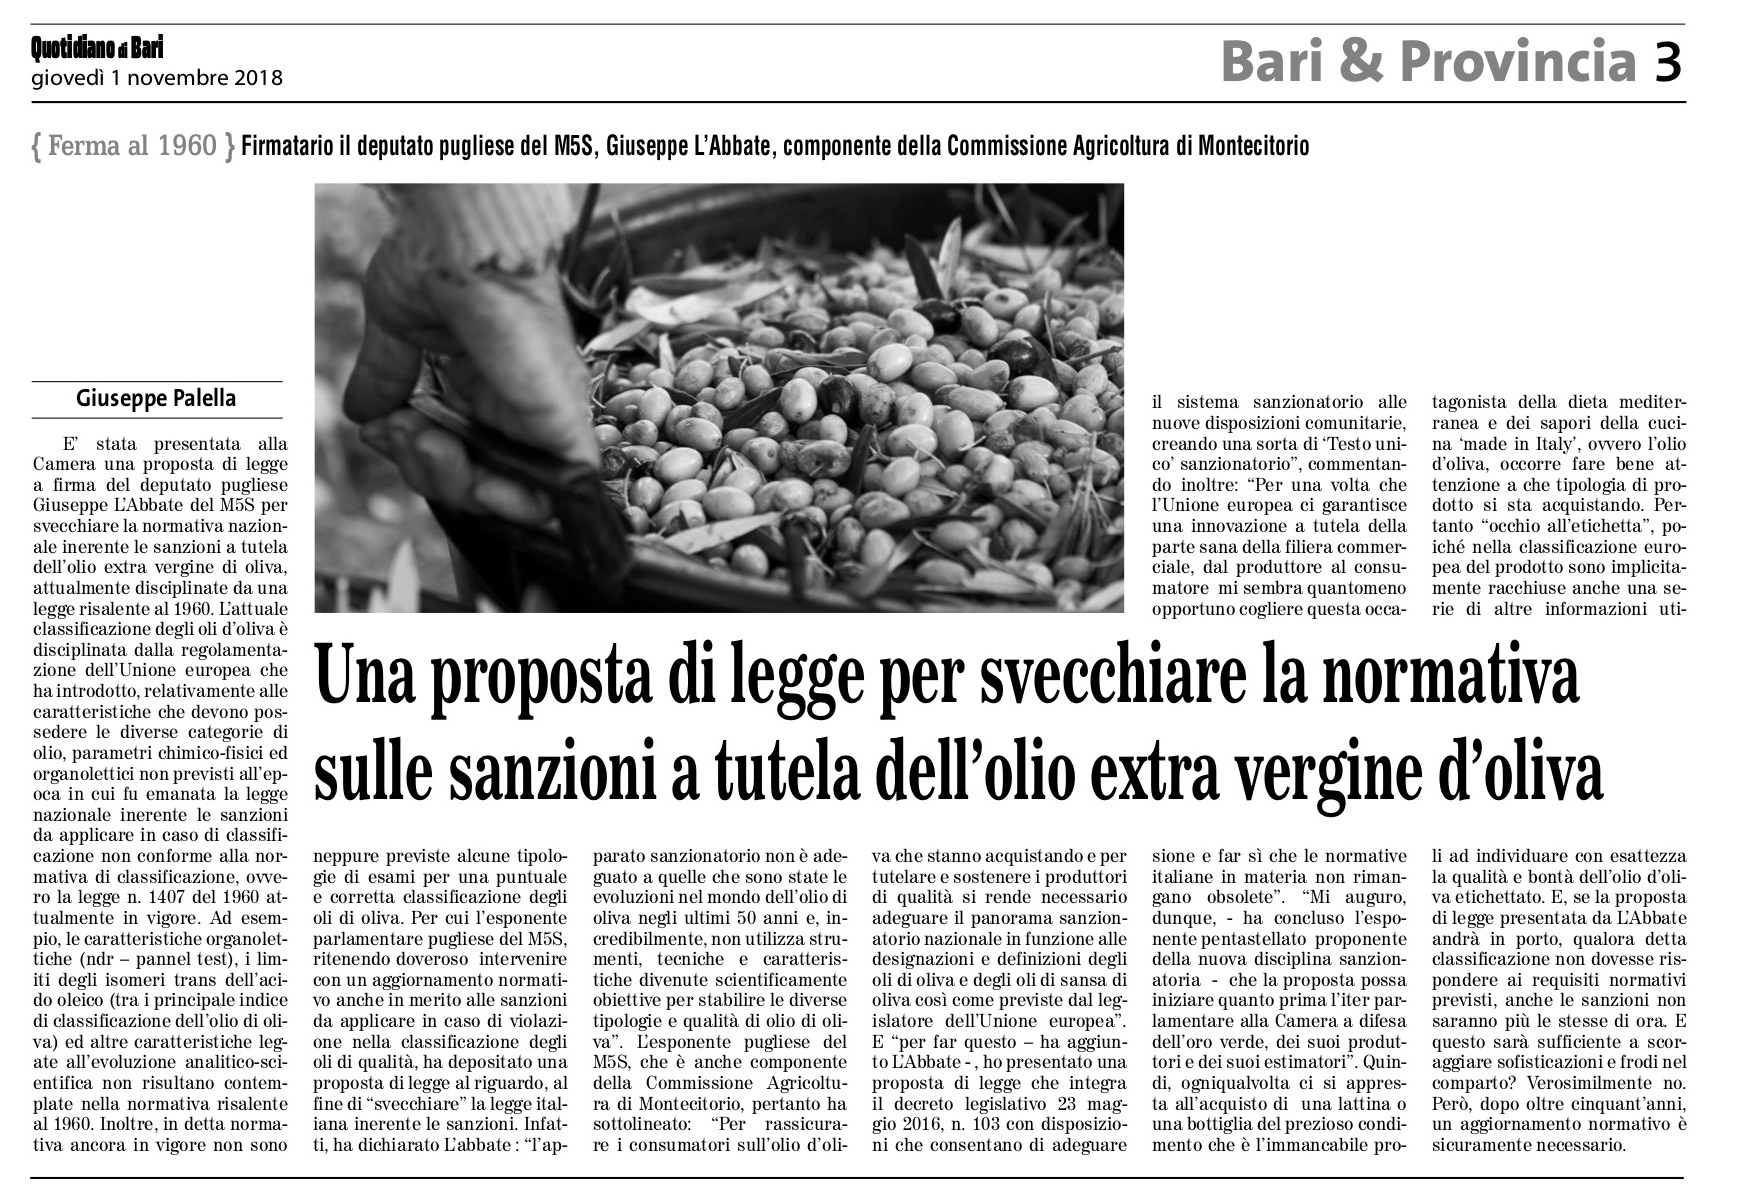 Il Quotidiano di Bari - 01.11.2018